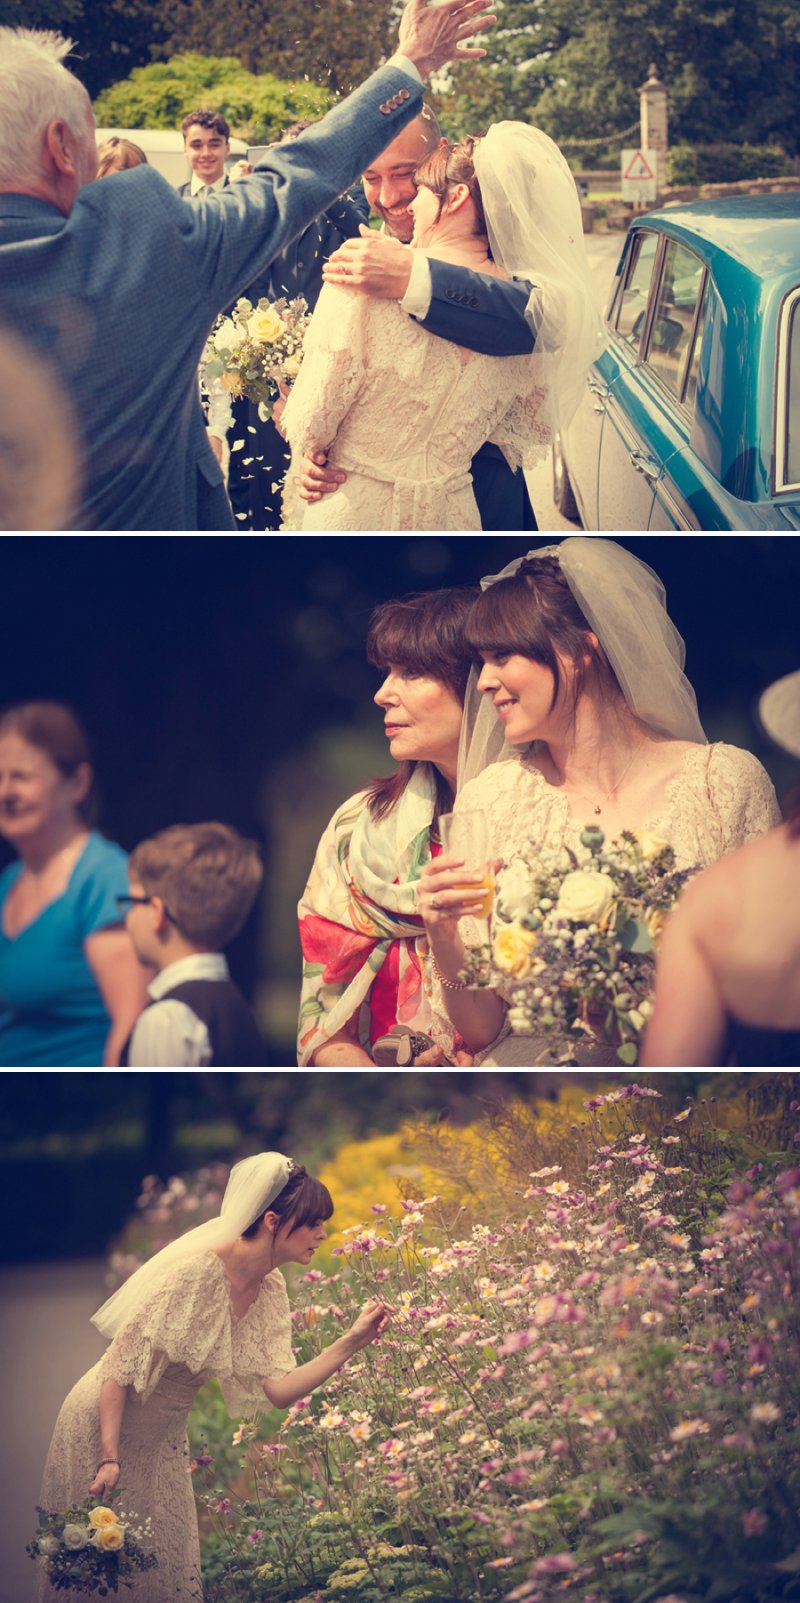 A 70s Inspired Wedding With A Pastel Colour Scheme And Bride In Vintage Lace Dress Found On Ebay And Groom In Navy Three Piece Suit By Paul Smith With Images From Steve Longbottom Mr Sleeve Wedding Photography 8